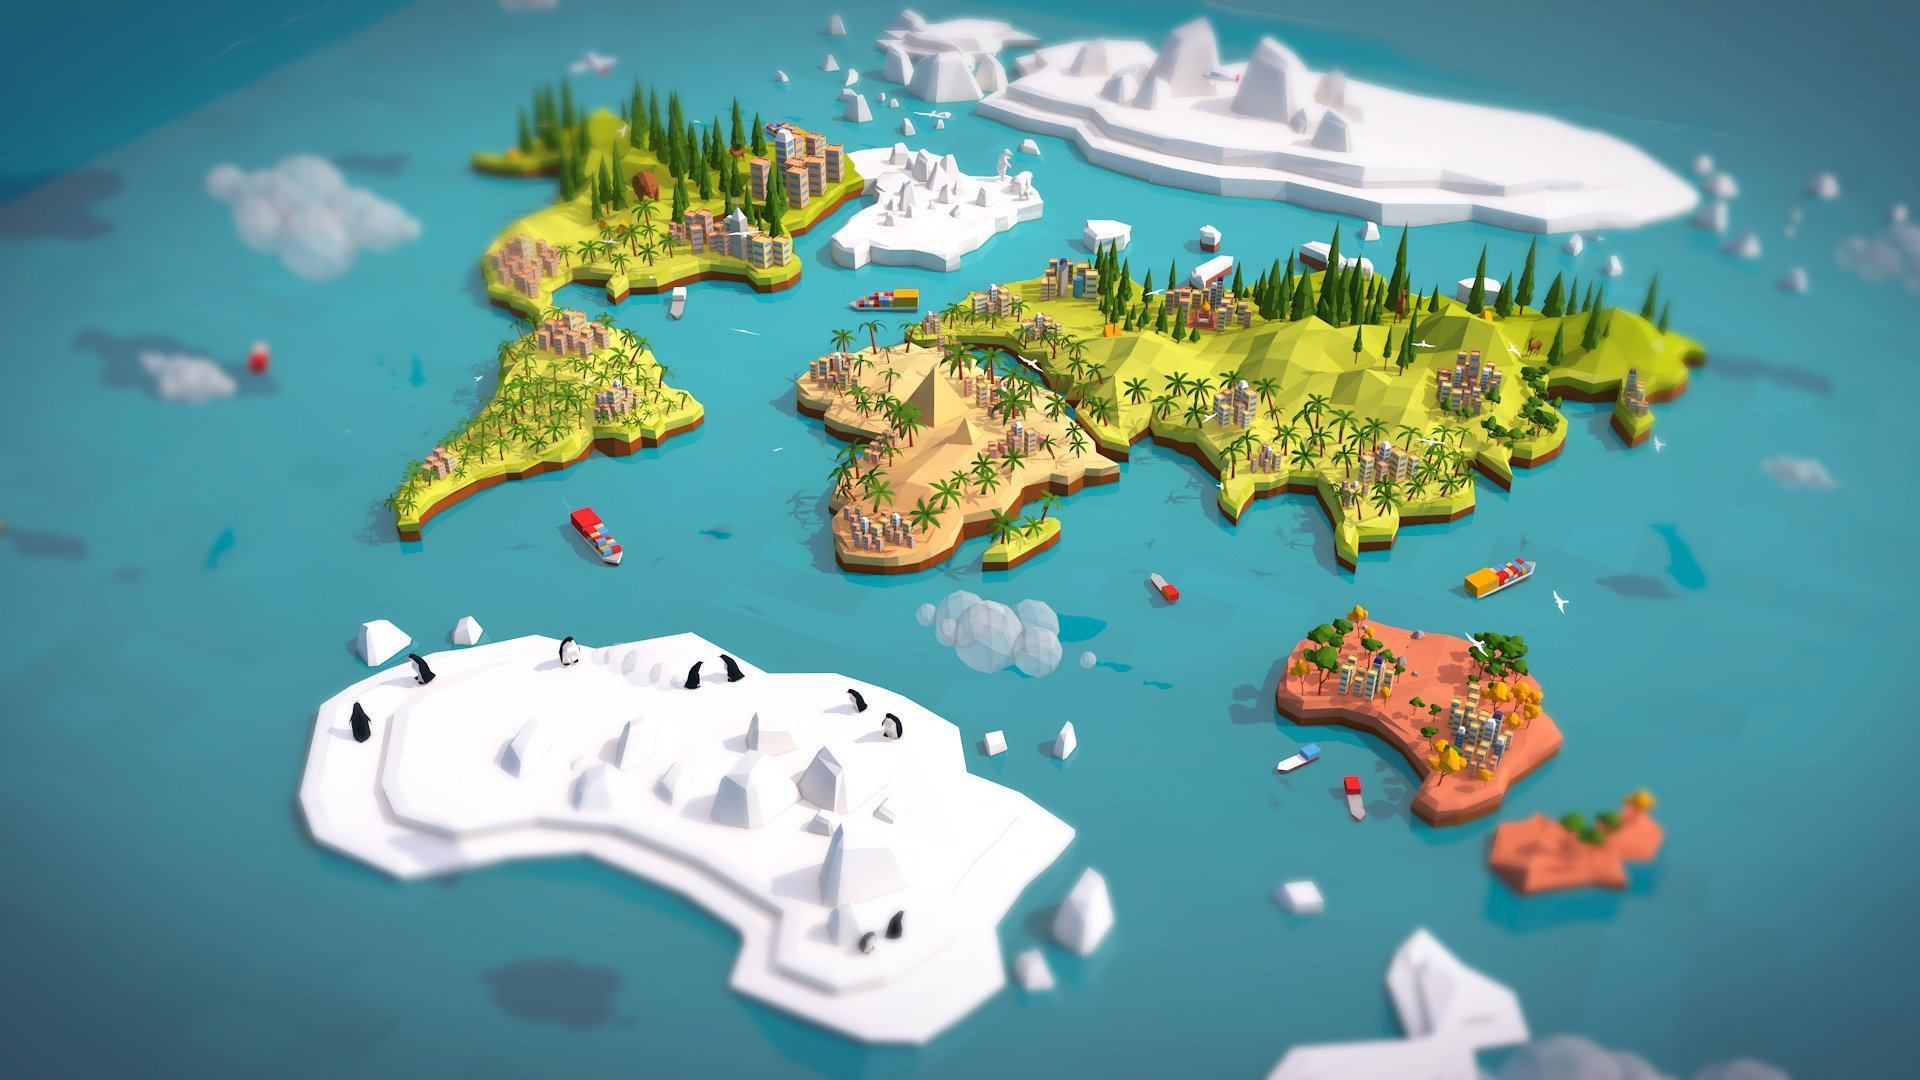 Cartoon low poly earth world map anton moek bitgem environments cartoon low poly earth world map gumiabroncs Image collections